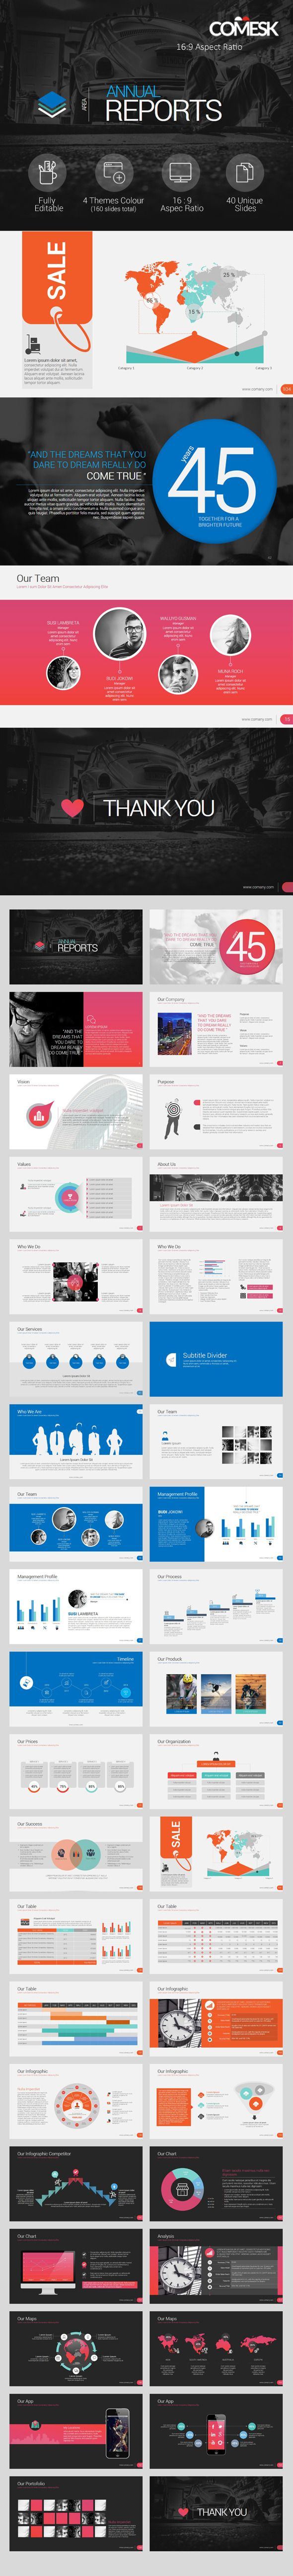 Annual Report Template #powerpoint #powerpointtemplate #presentation Download: http://graphicriver.net/item/annual-report/9703641?ref=ksioks